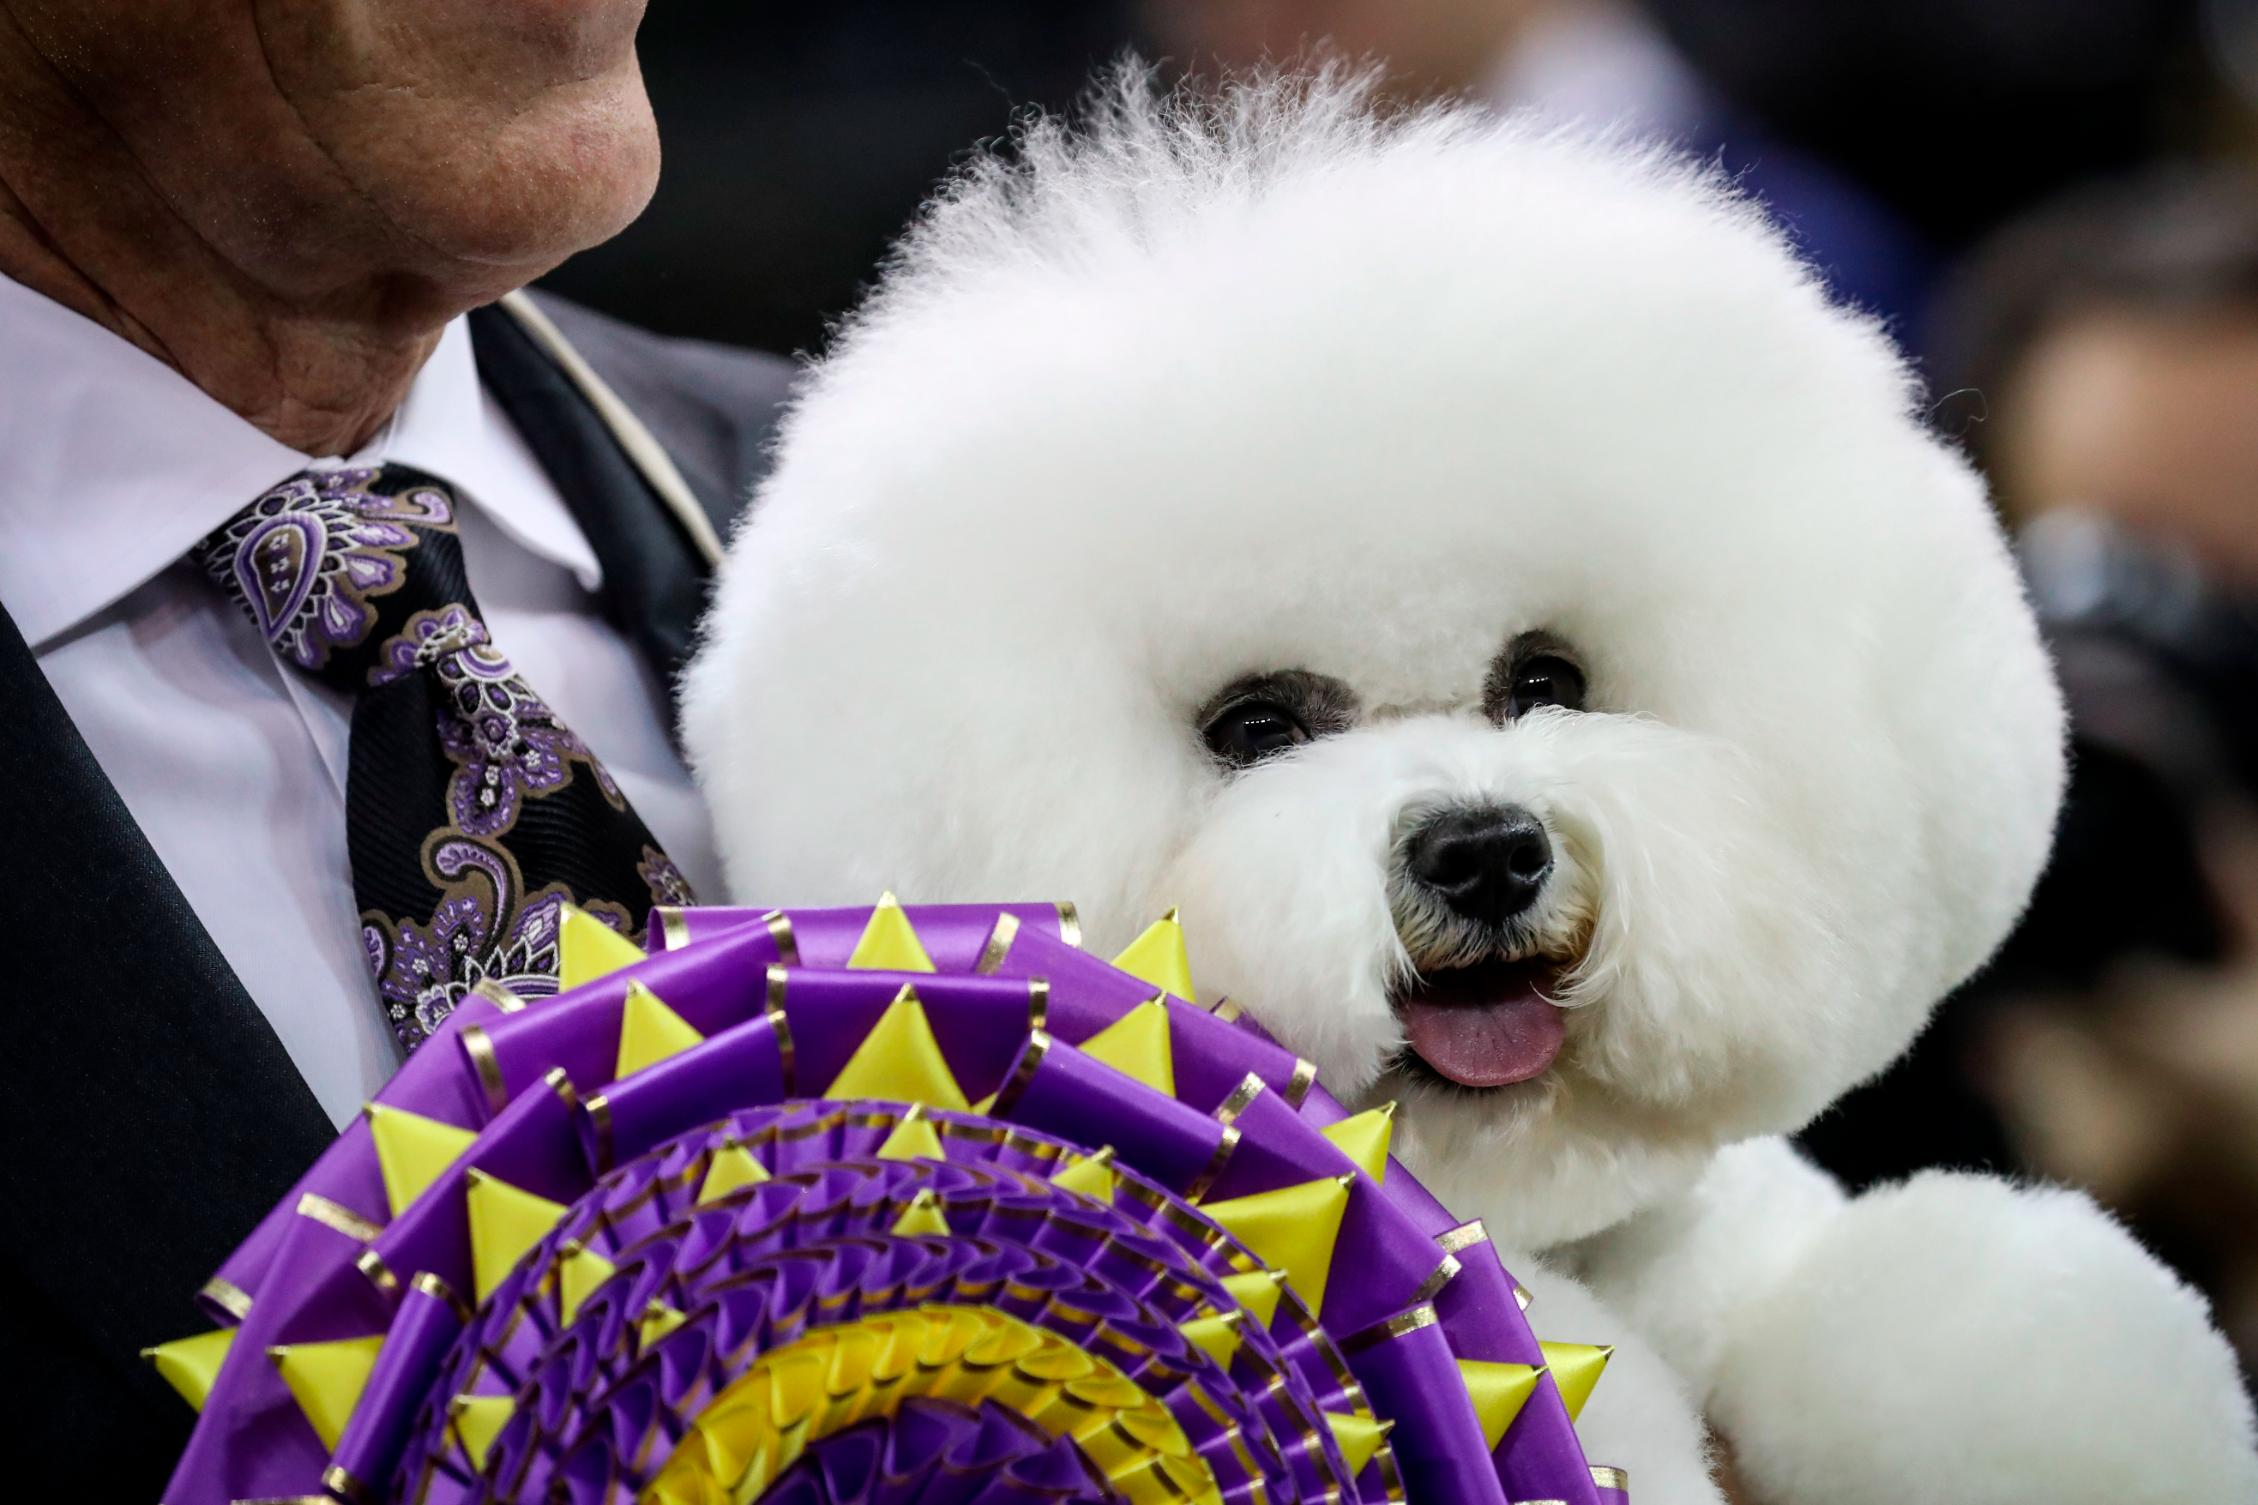 Dogs descend upon Manhattan for Dog Show - CNN Video